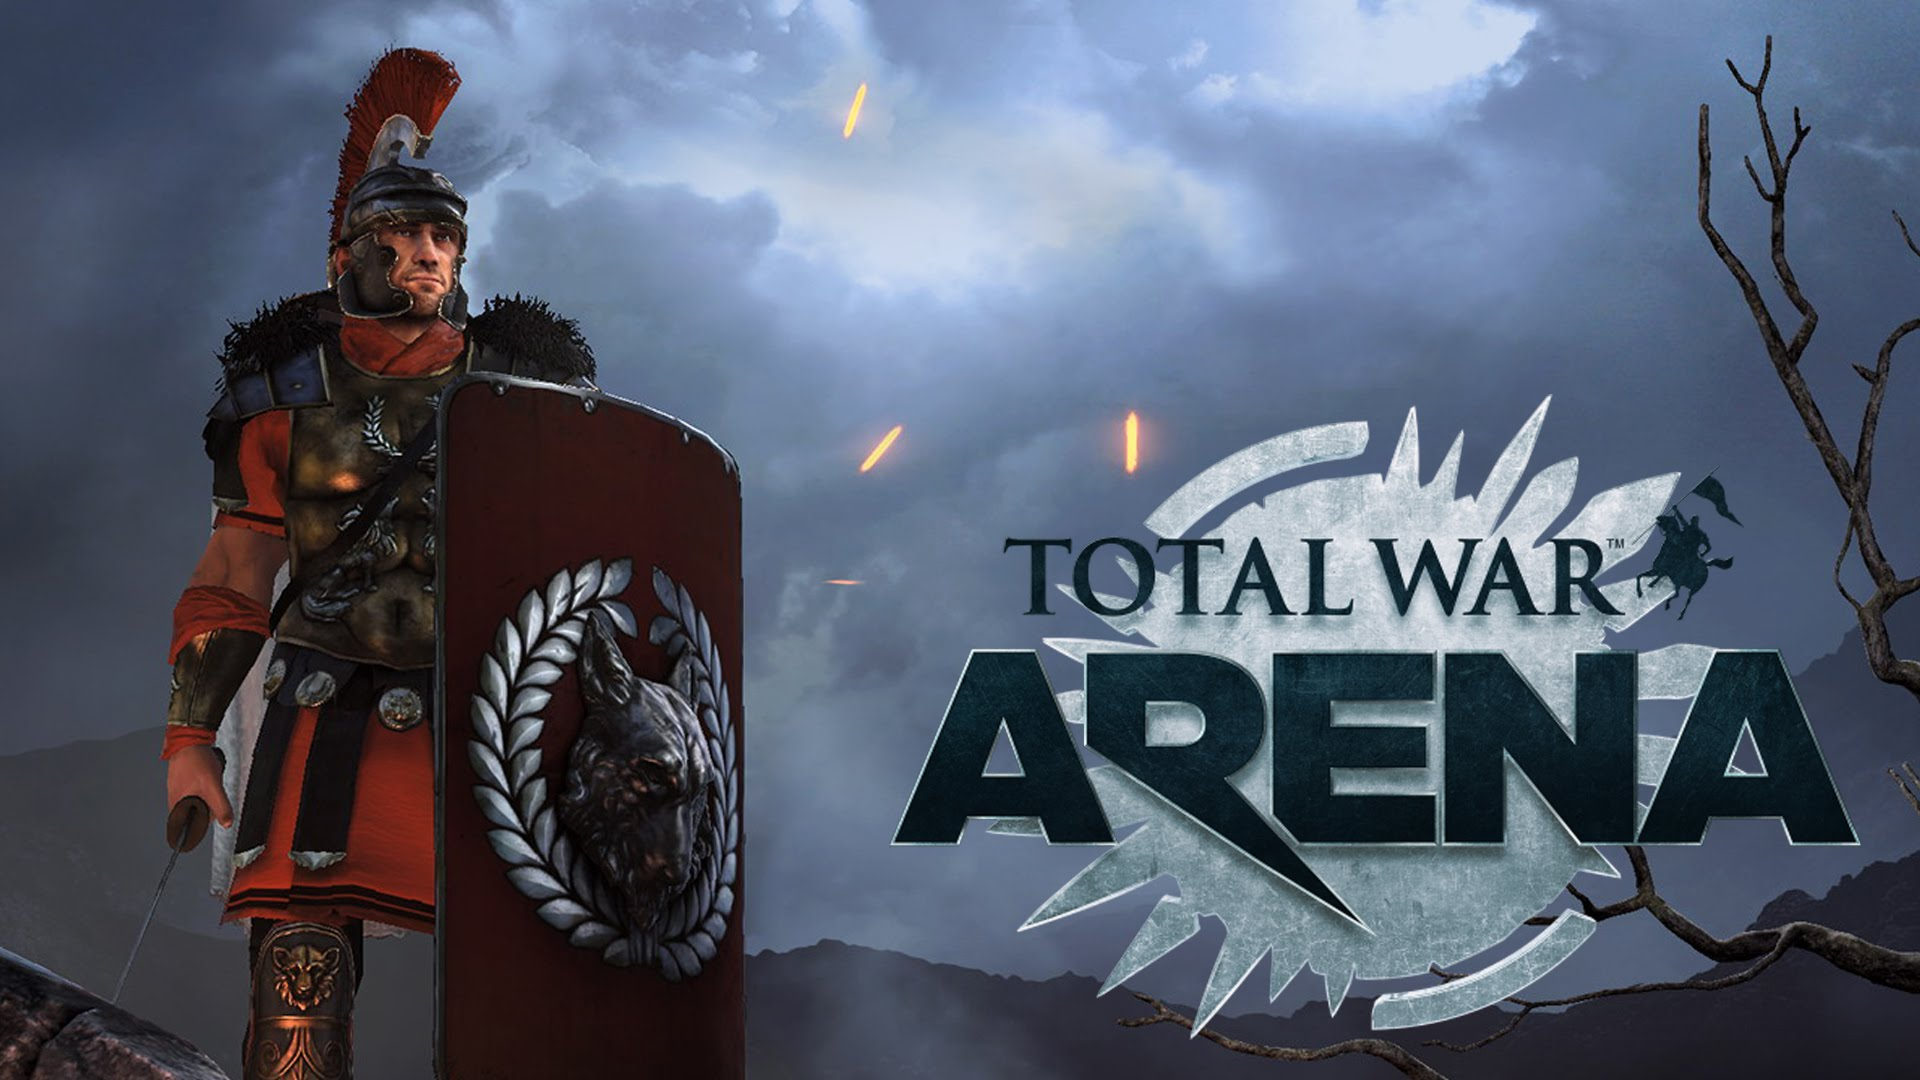 Total War: Arena - Best Strategy Game of E3 2017 - Nominee